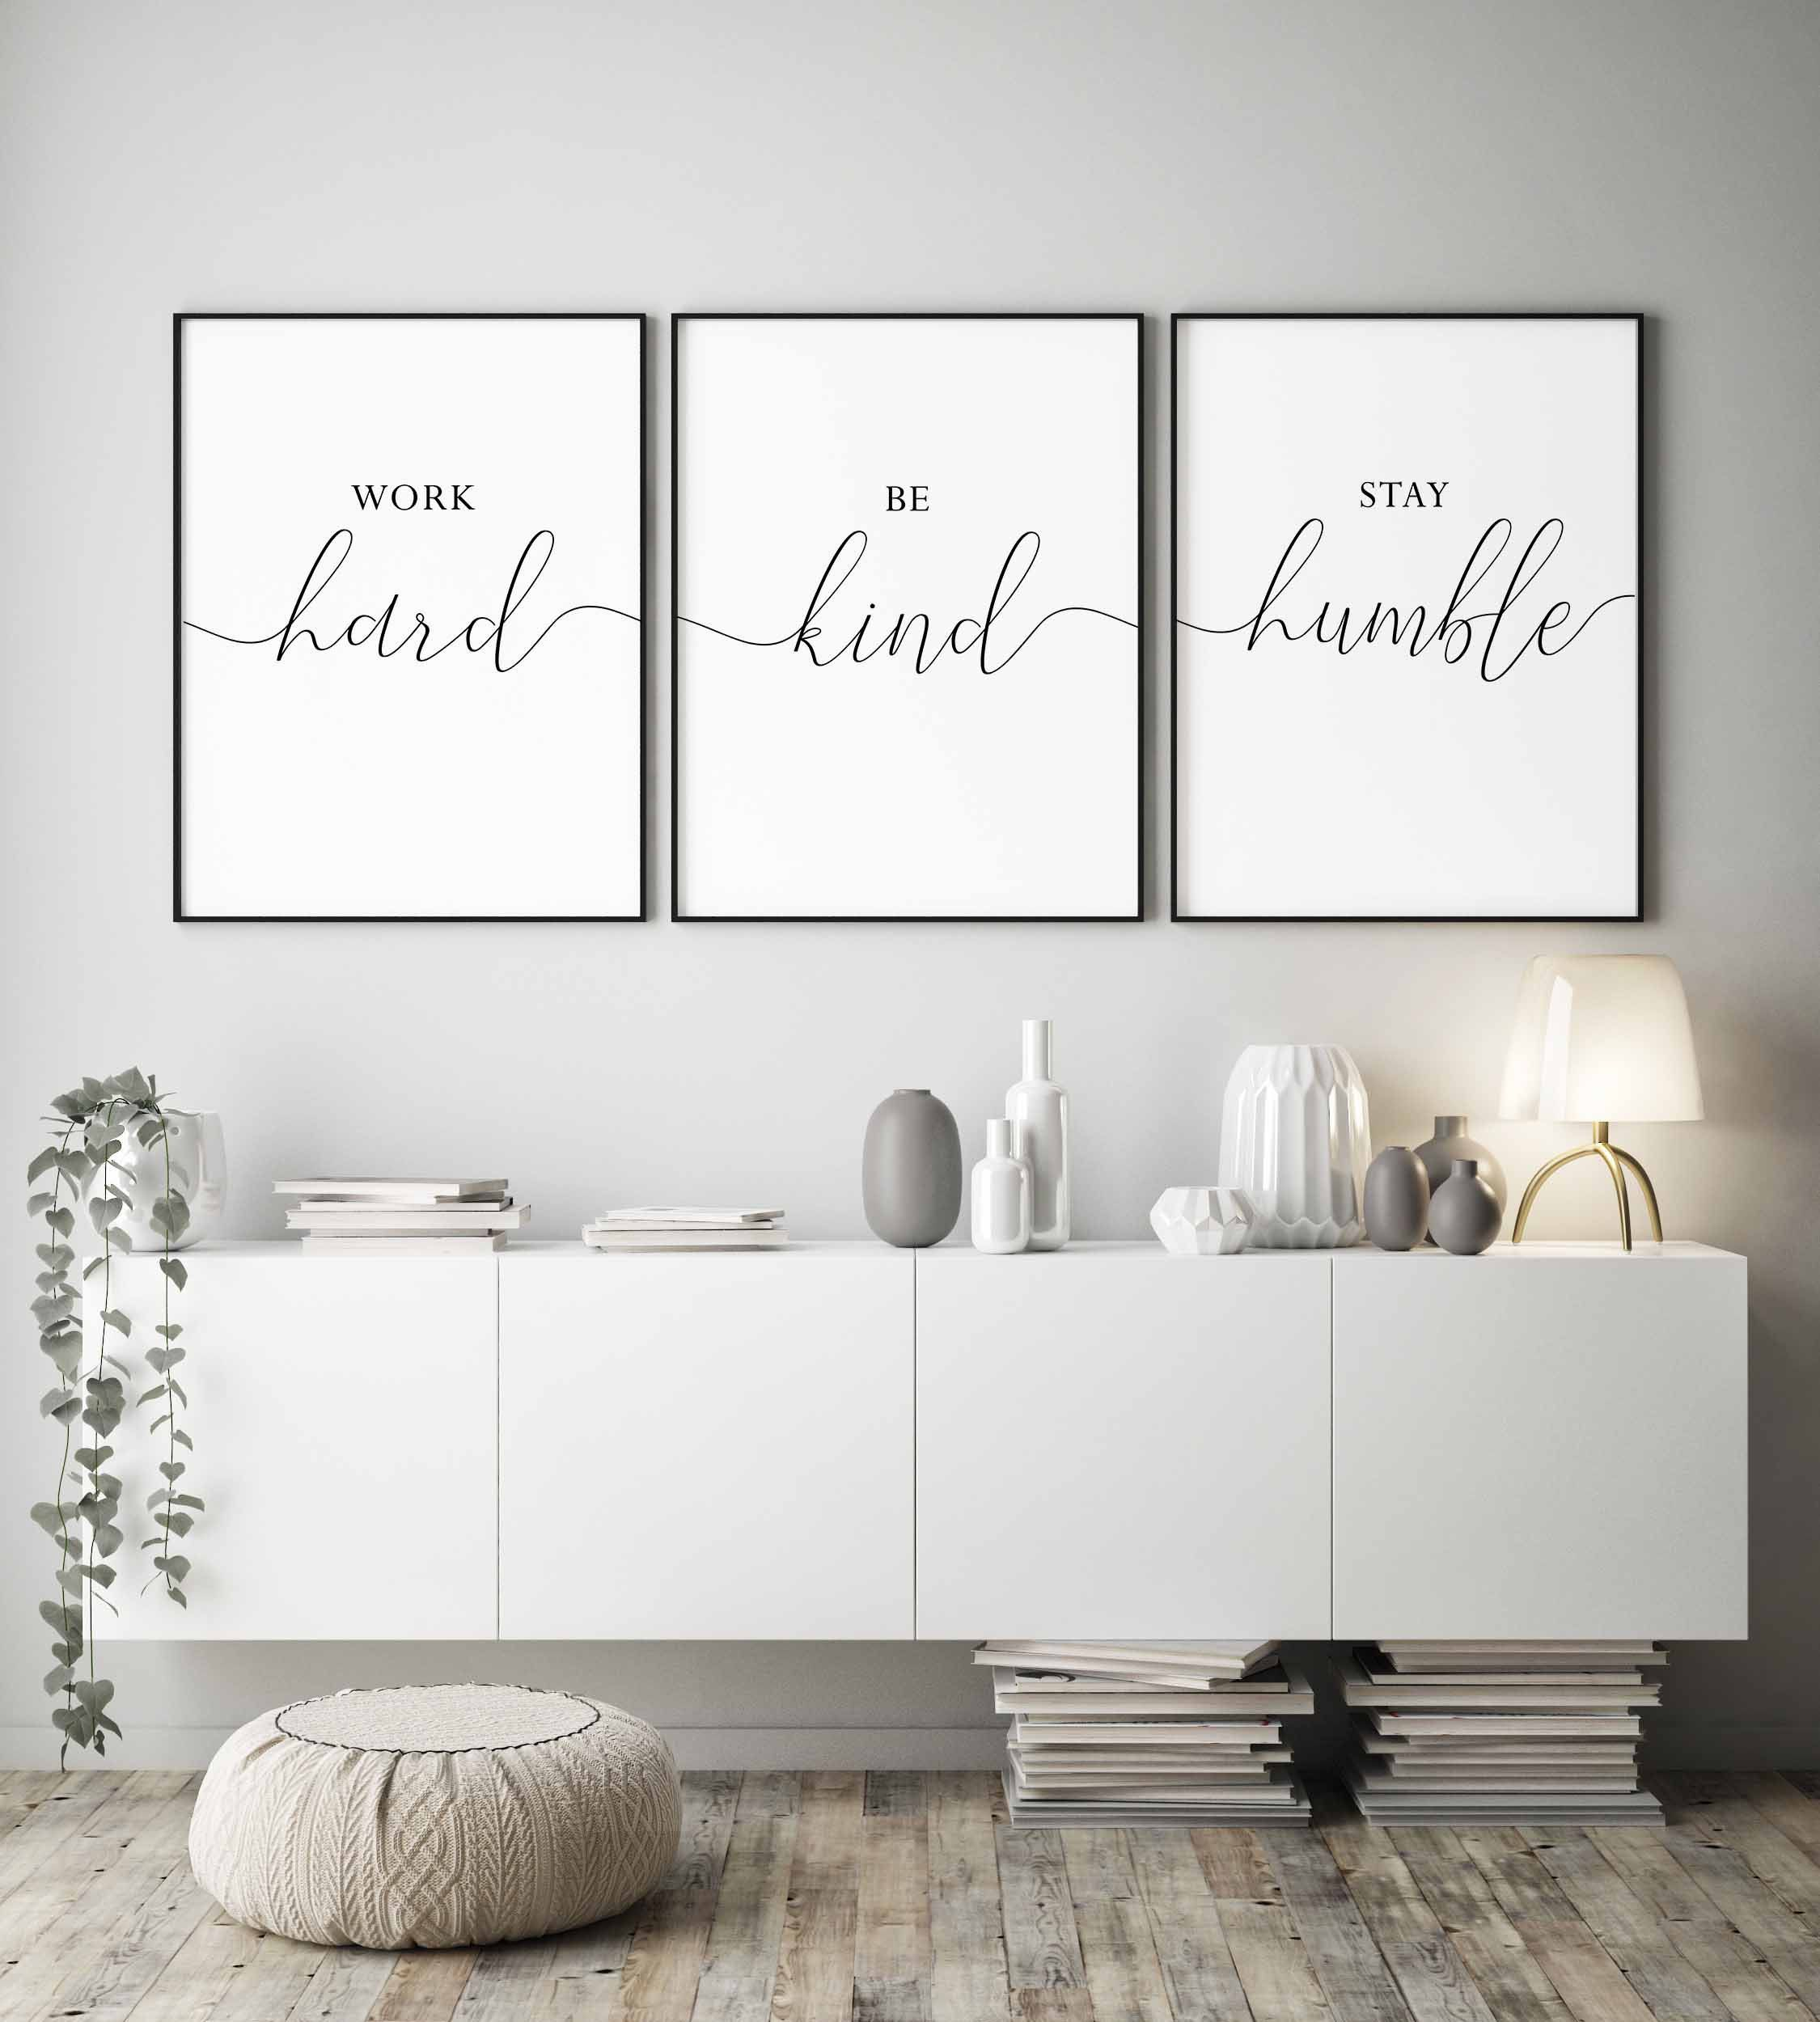 Printable Quotes Work Hard Be Kind Stay Humble Office Wall Decor